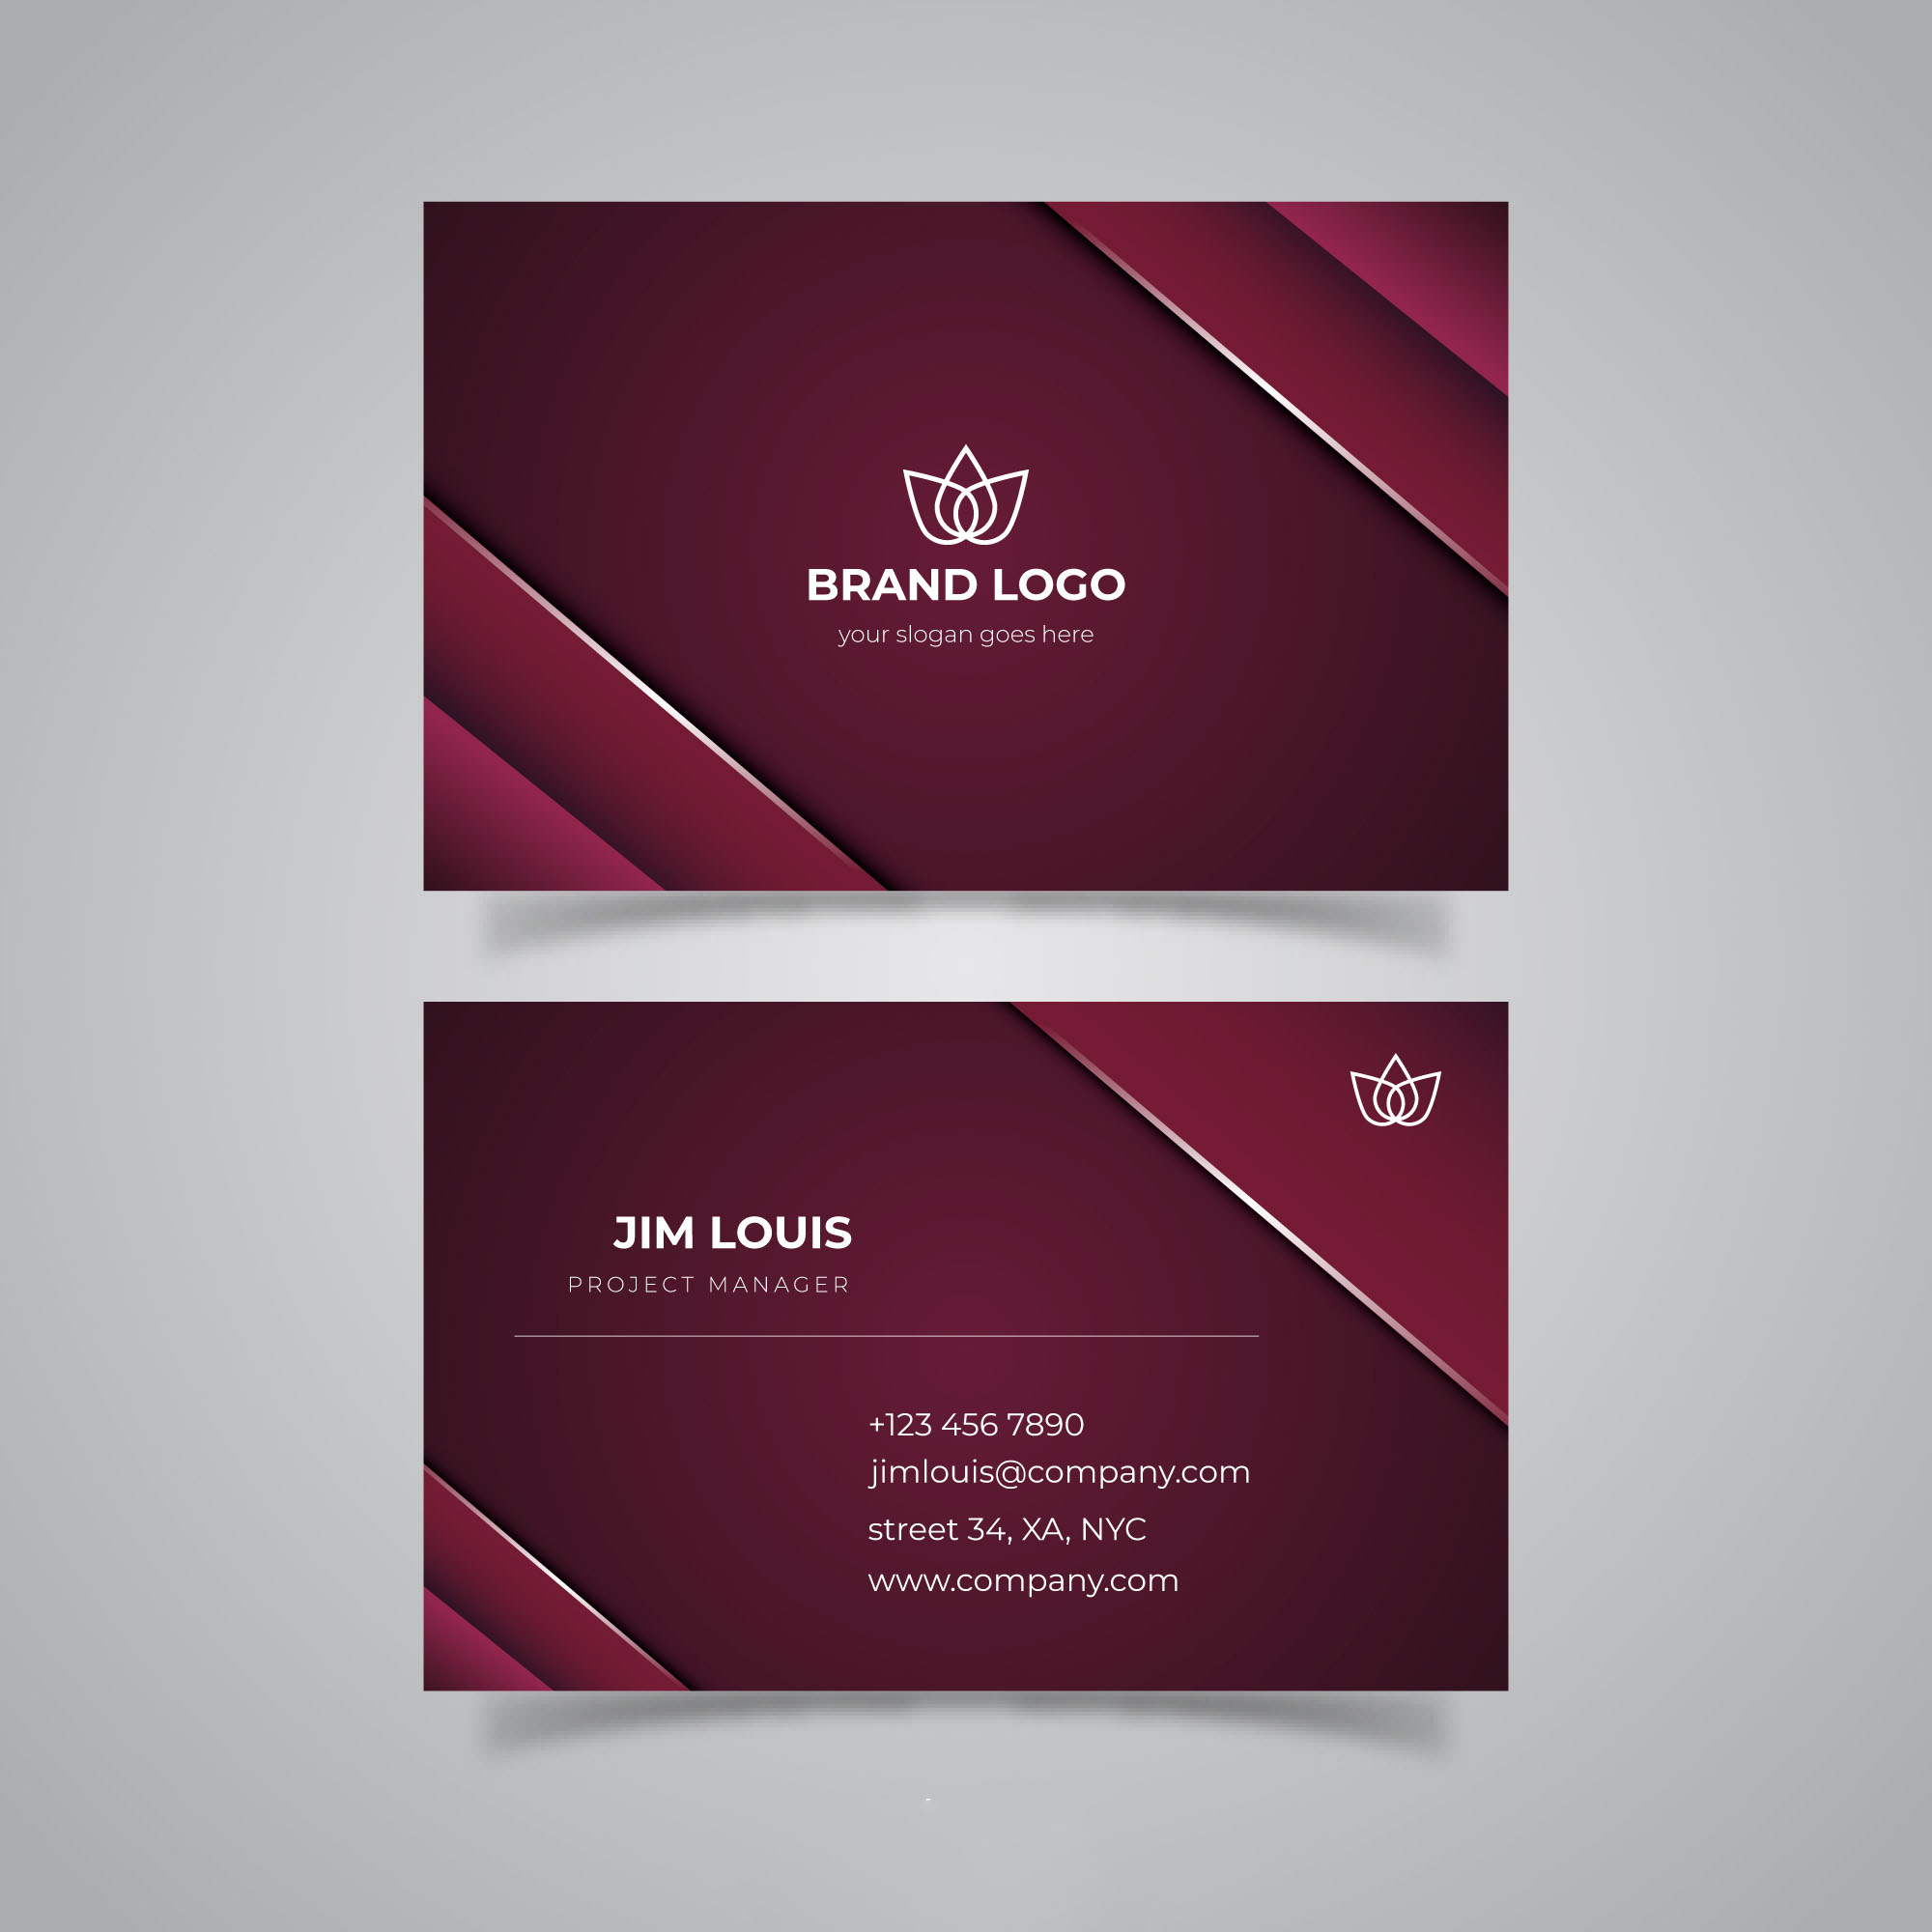 Design Professional Business Card Within 1days